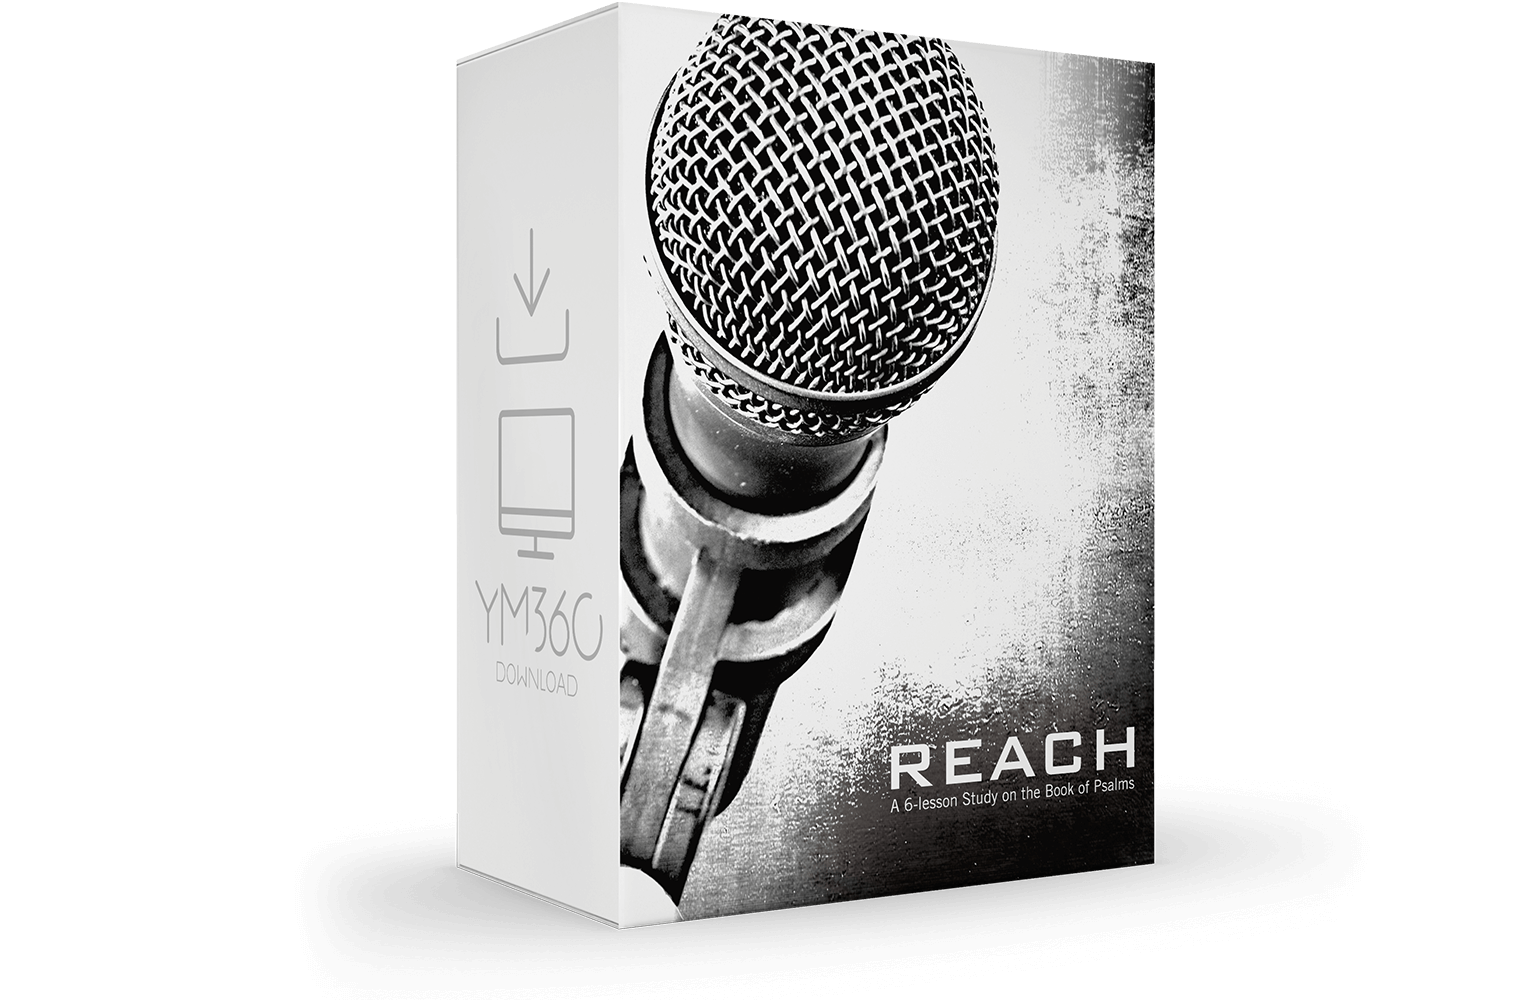 Reach: A 6-lesson Study On The Book Of Psalms